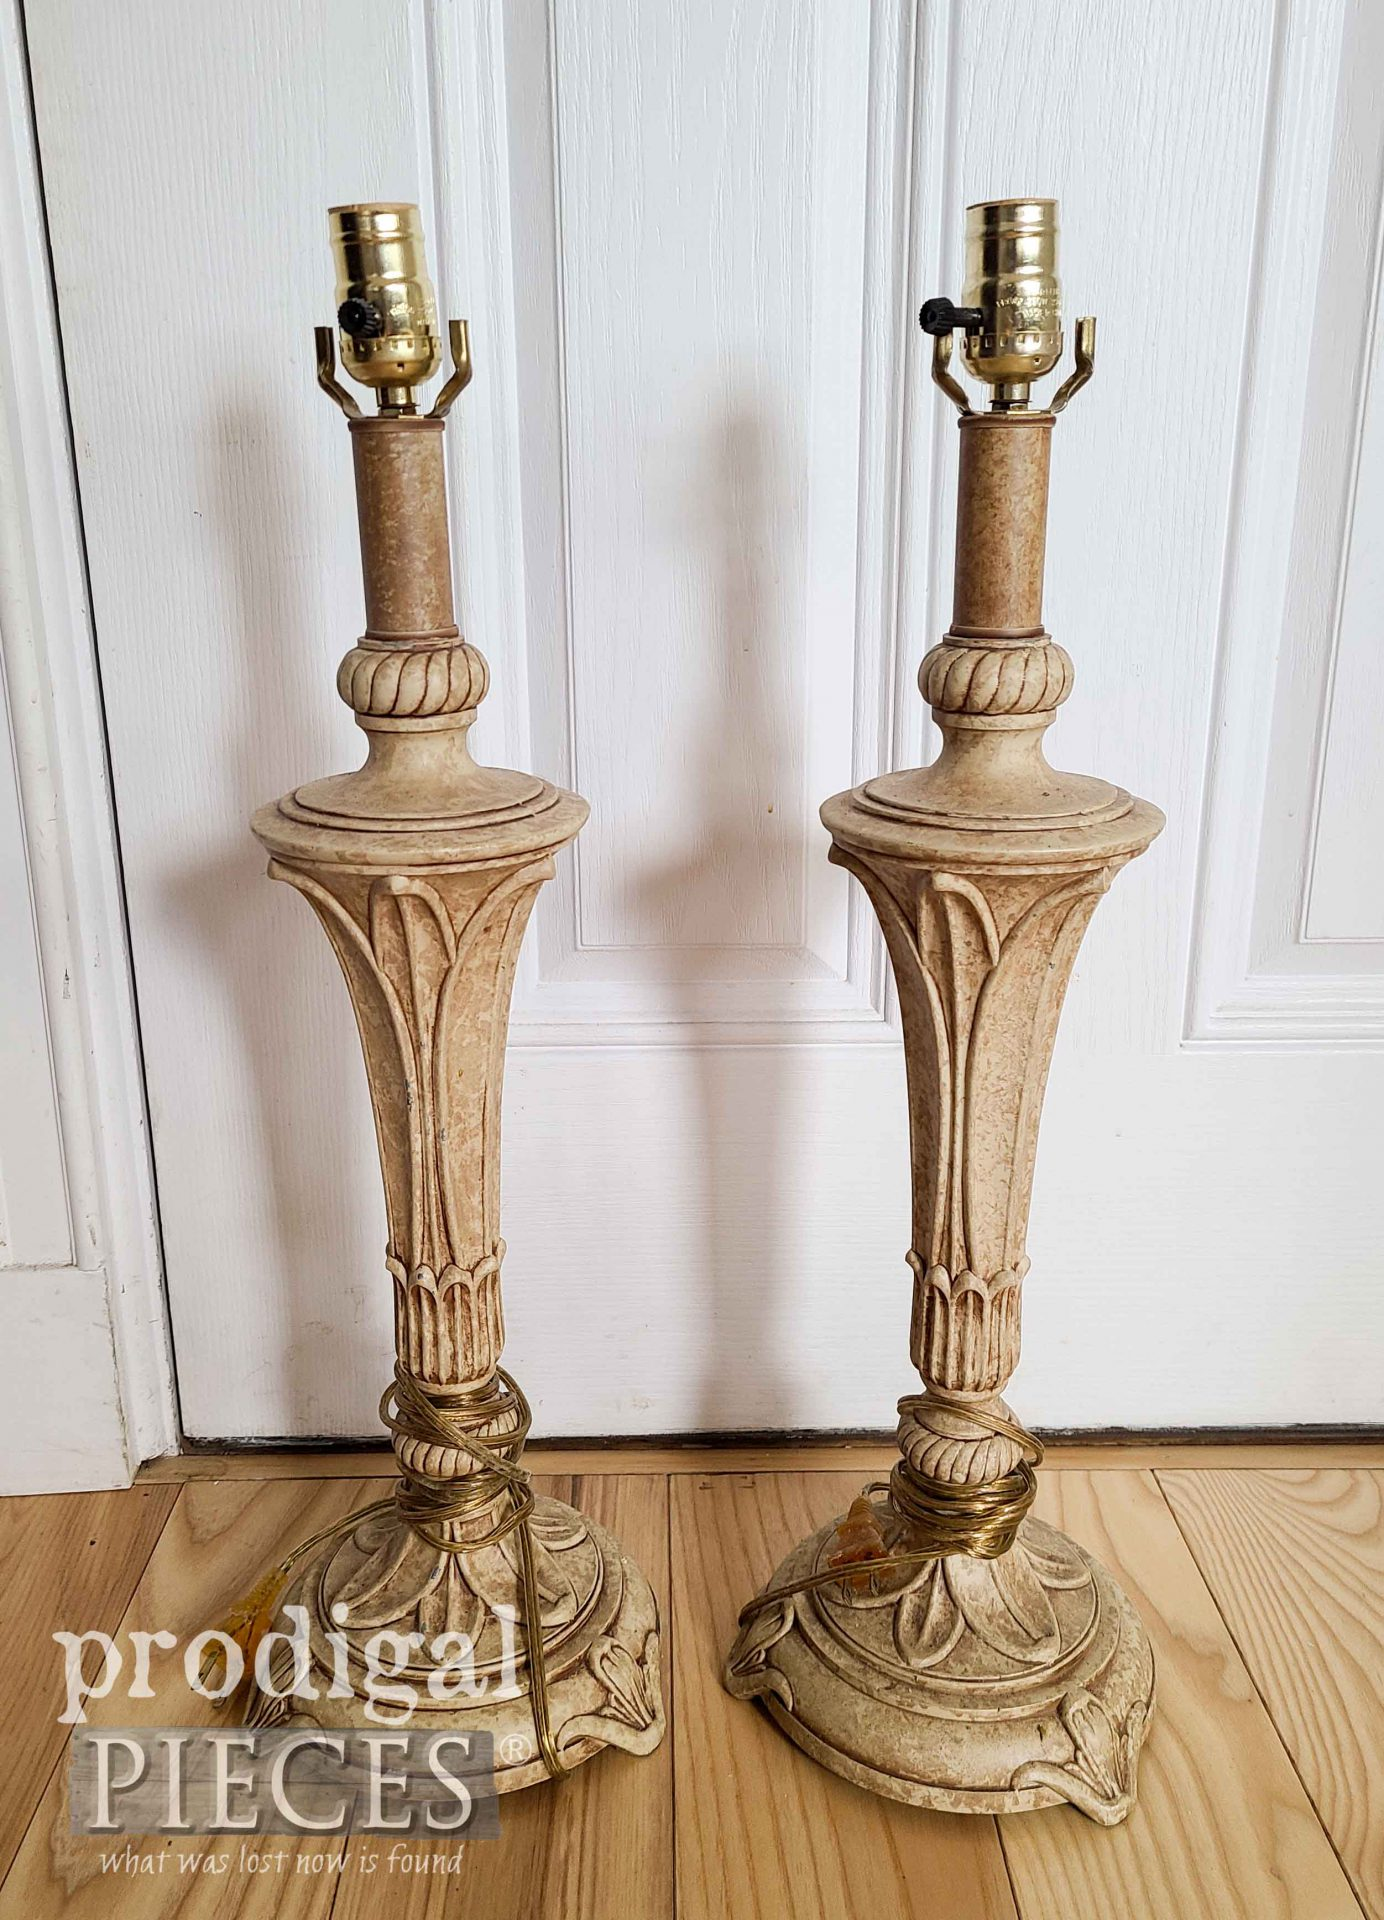 Thrifted Vintage Table Lamps Before Makeover | prodigalpieces.com